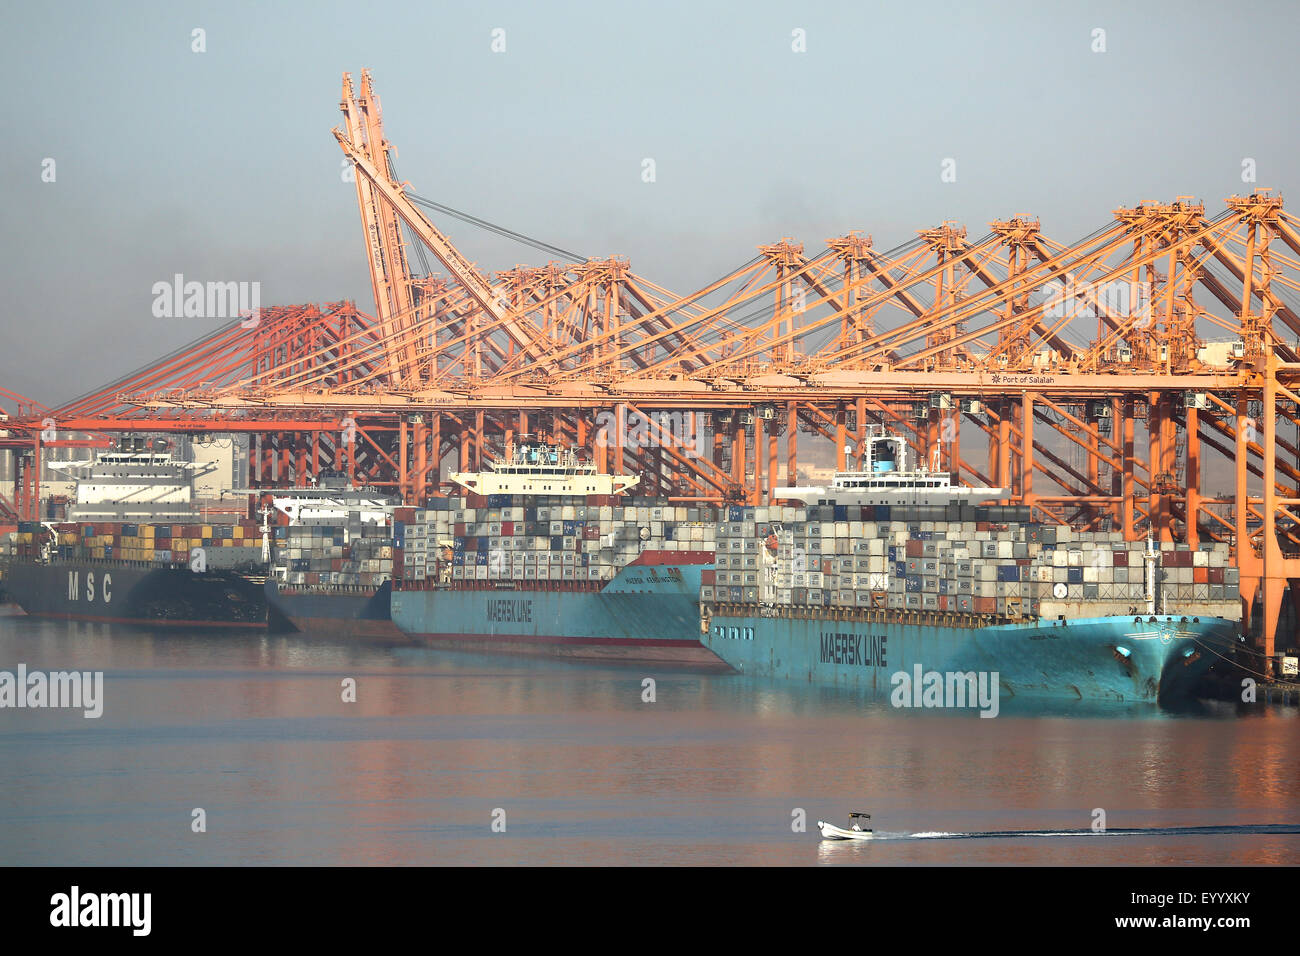 Maersk container ship berthing at Salalah Oman Middle east Stock Photo